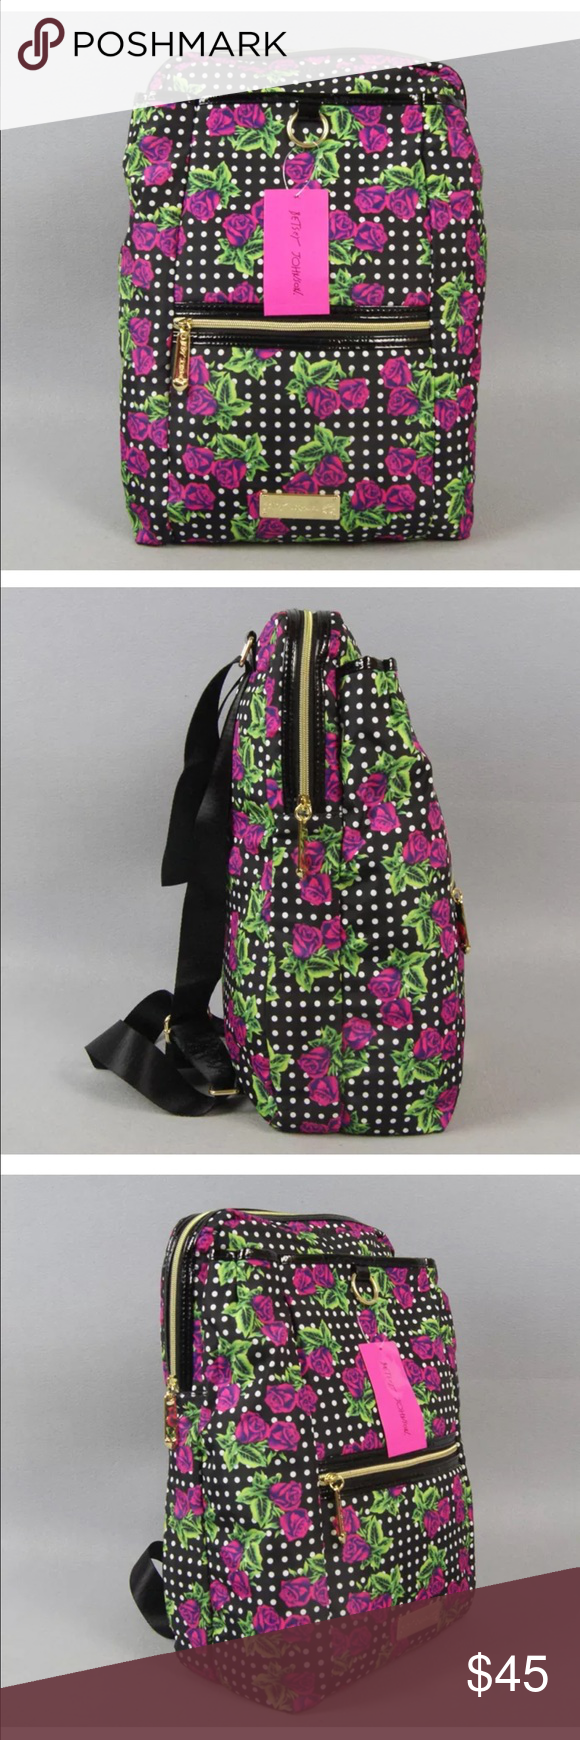 Betsey Johnson Backpack new with tags Next day shipping Betsey Johnson Bags Backpacks